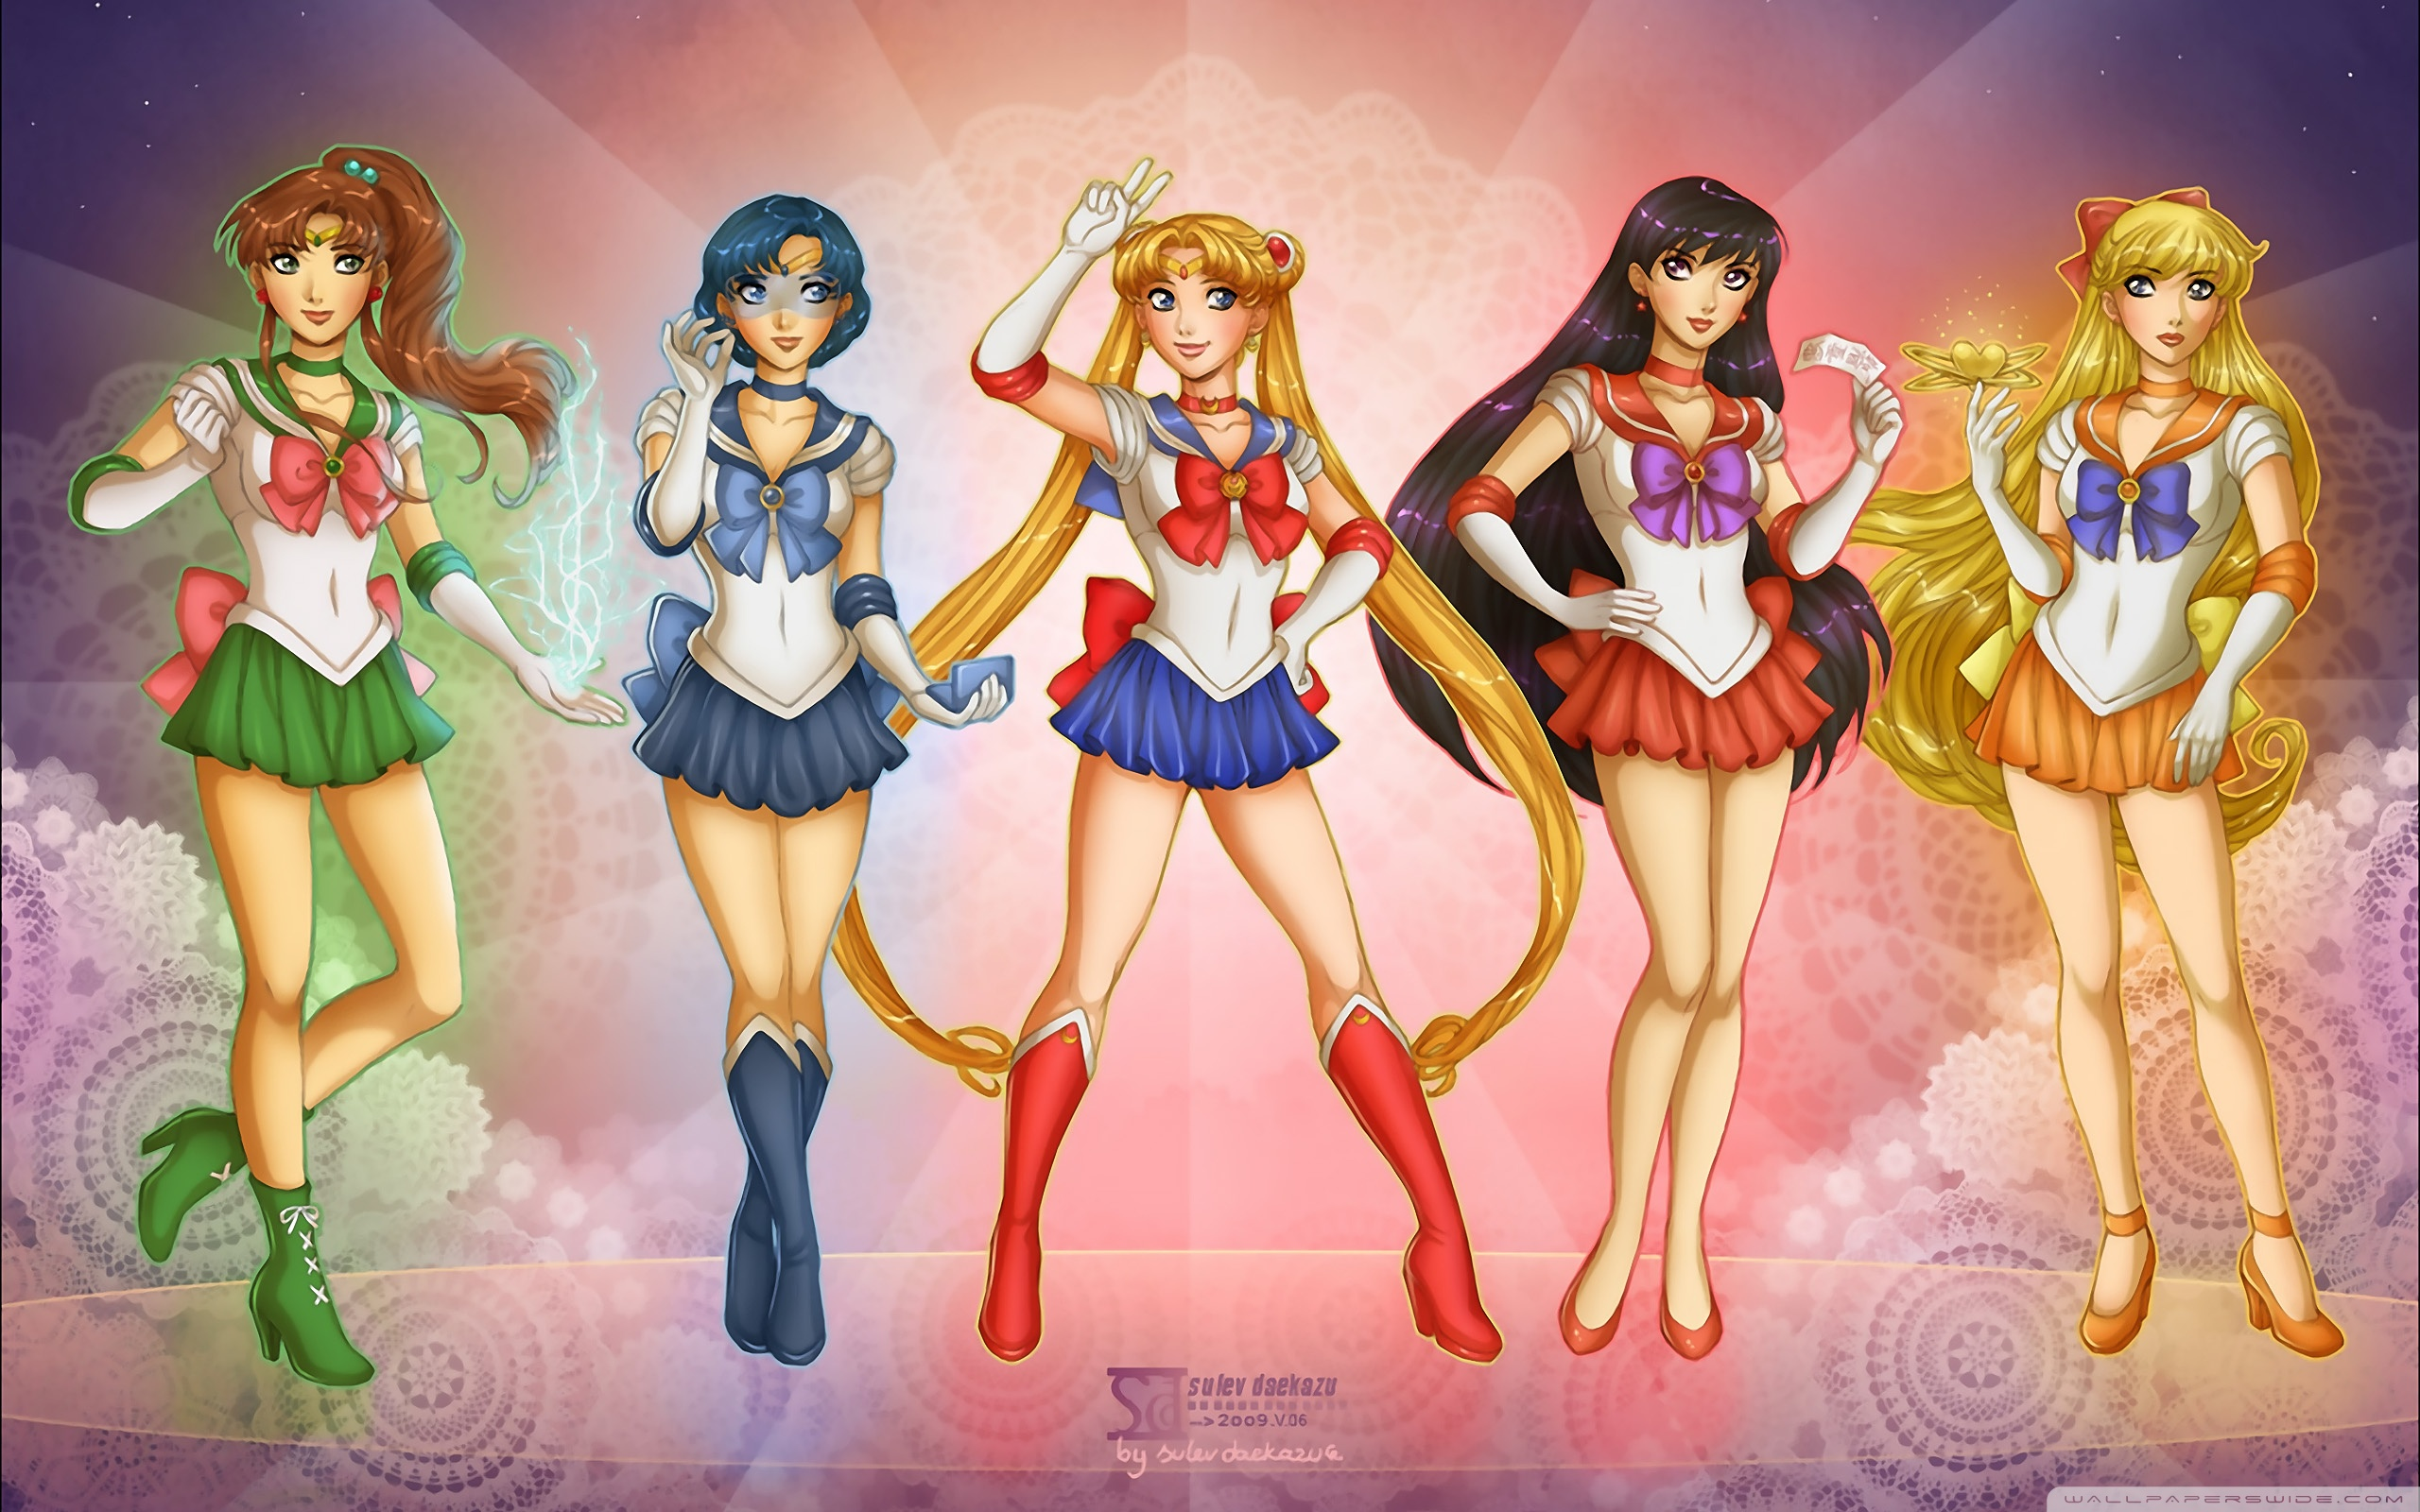 Hd Gif Wallpaper For Desktop Sailor Scouts 4k Hd Desktop Wallpaper For 4k Ultra Hd Tv